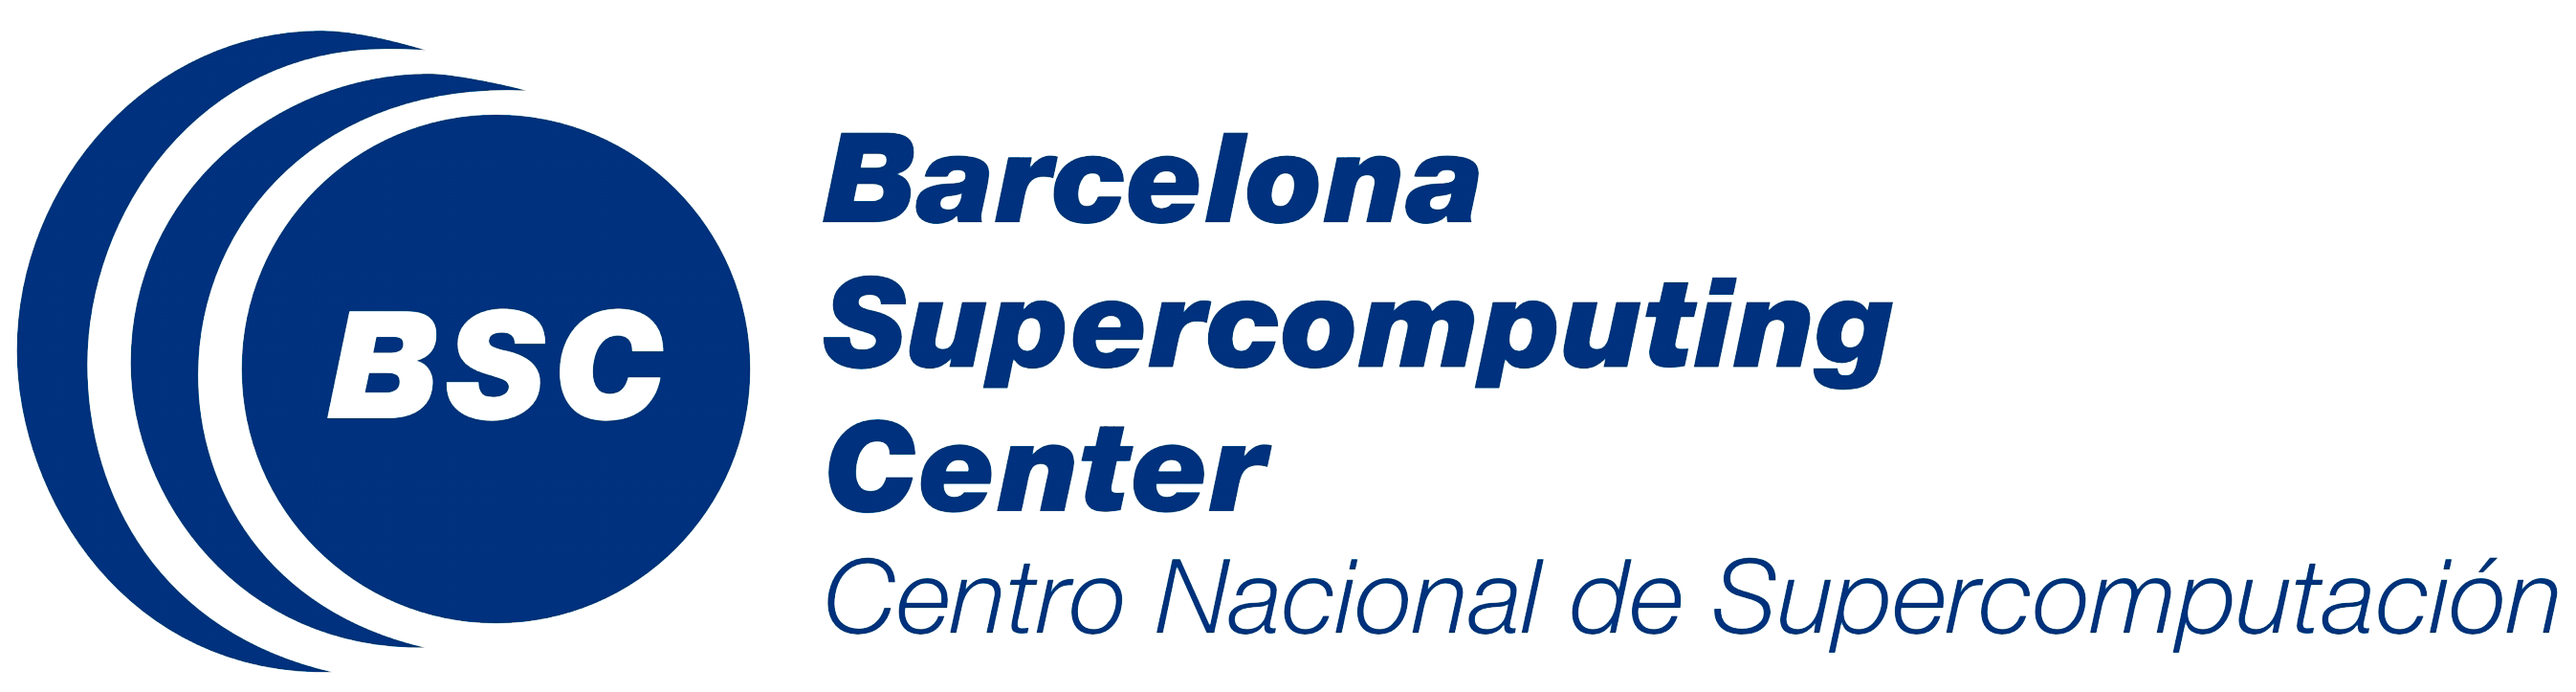 barcelona supercomputing center bsc cns biysc